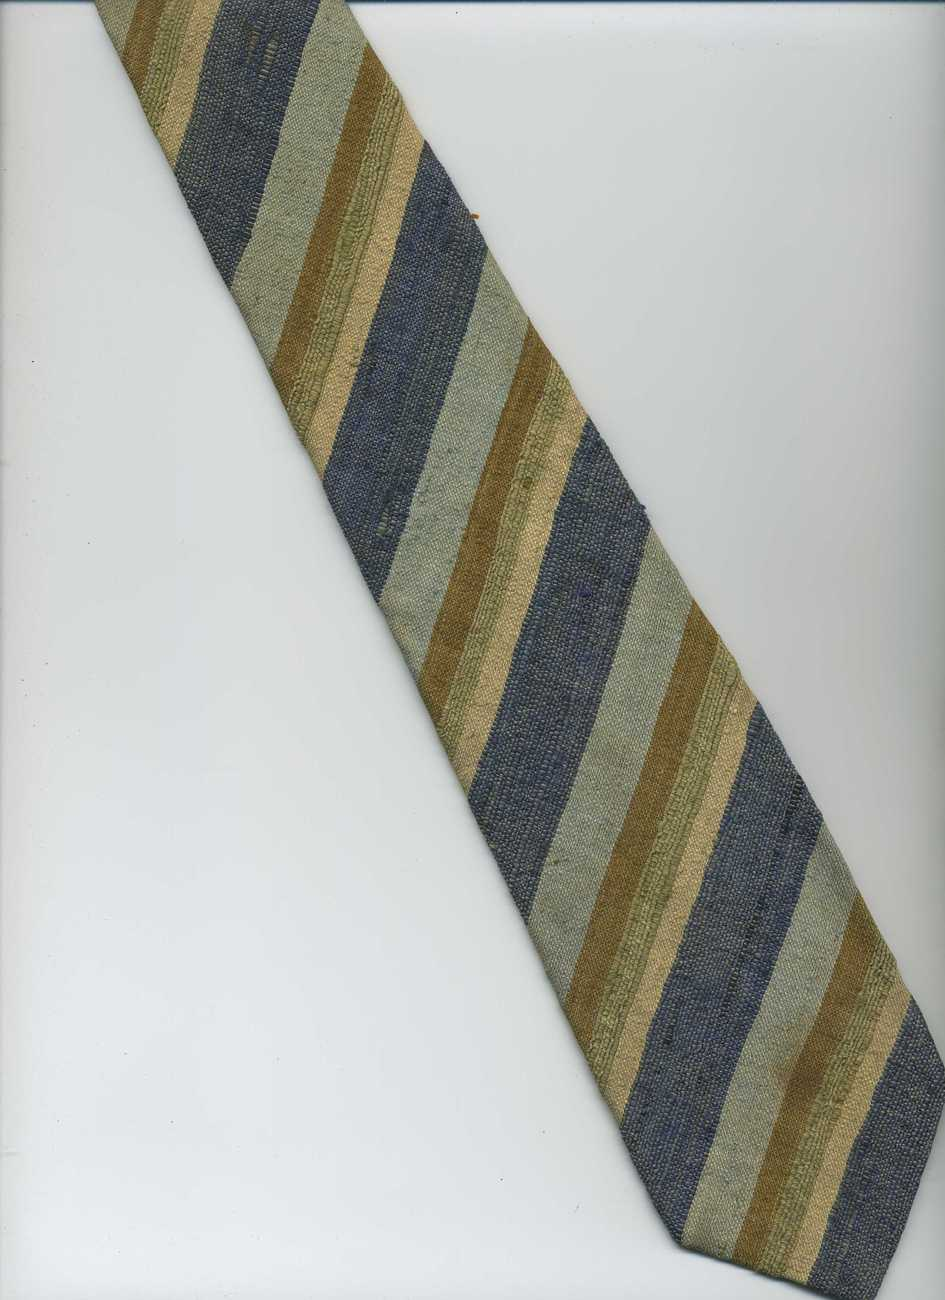 Retro TALBOTT Cravats Tie ~ Blue, Tan, Green, Beige ~ Striped, Hand Sewn, Silk